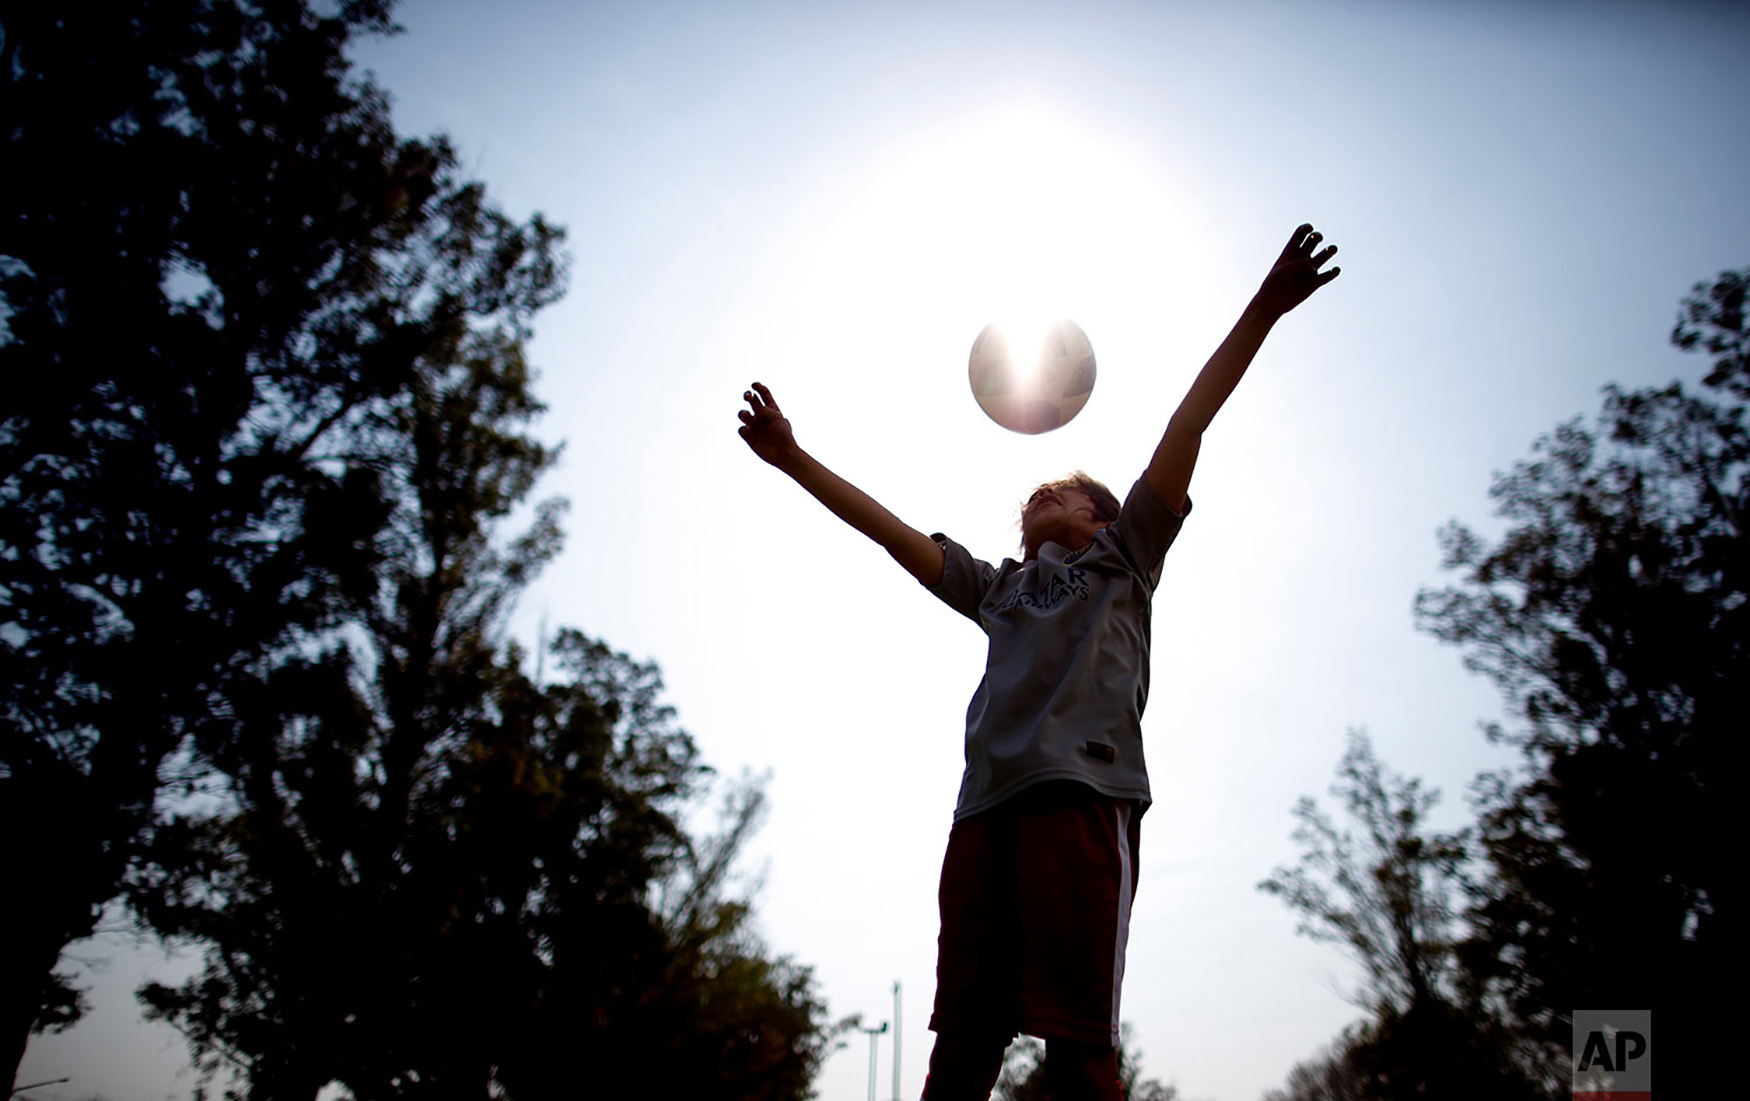 "Candelaria Cabrera plays with a soccer ball in Chabas, Argentina, Sept. 8, 2018. ""Cande,"" as she is known by friends and family, is the only girl playing in a children's soccer league in the southern part of Argentina's Santa Fe province, birthplace of stars including Lionel Messi, Gabriel Batistuta and Jorge Valdano. (AP Photo/Natacha Pisarenko)"